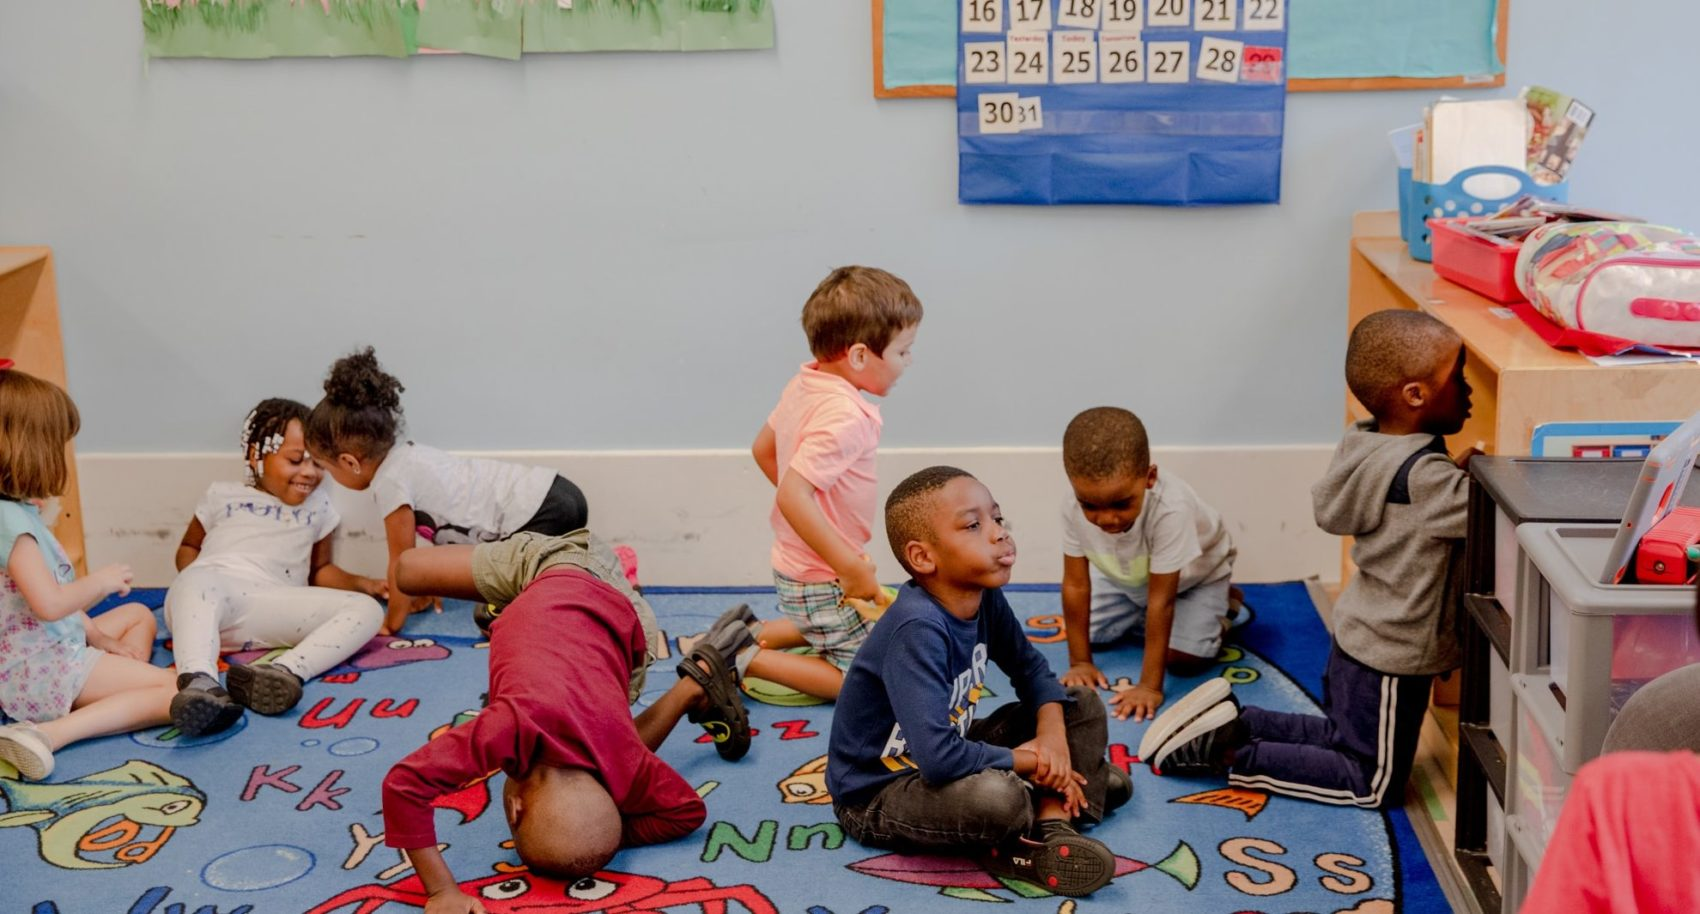 A pandemic lesson for CSCU leaders: affordable, accessible childcare is critical